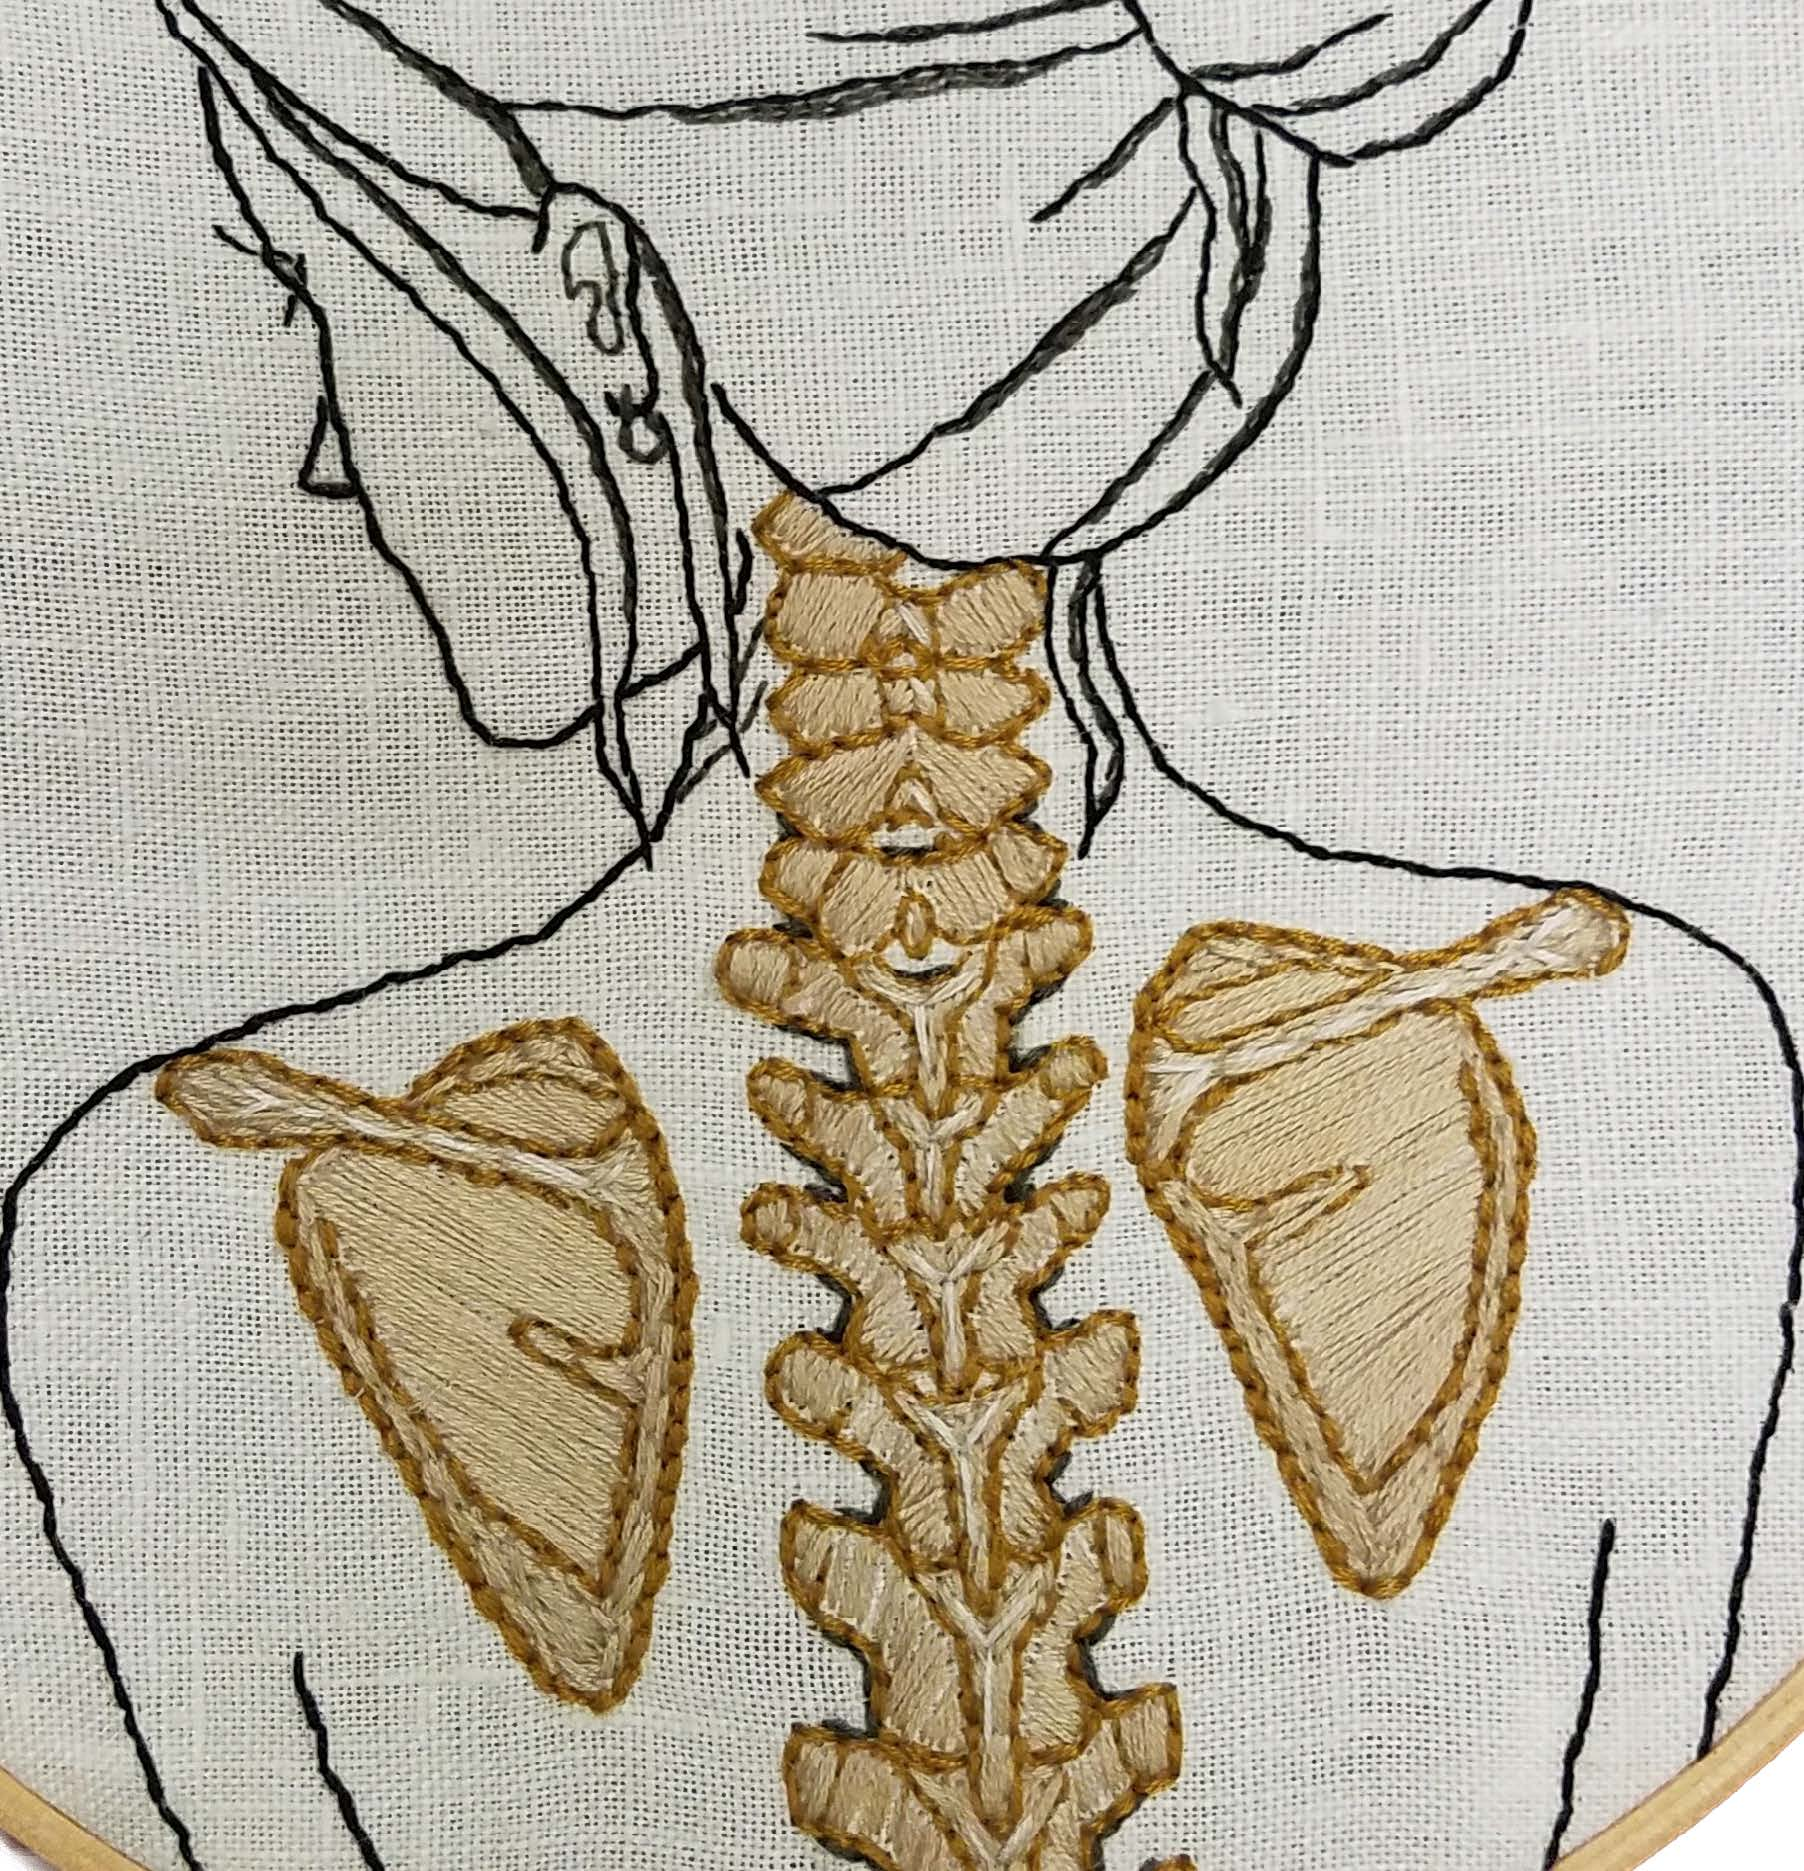 Woman, spine and scapulae